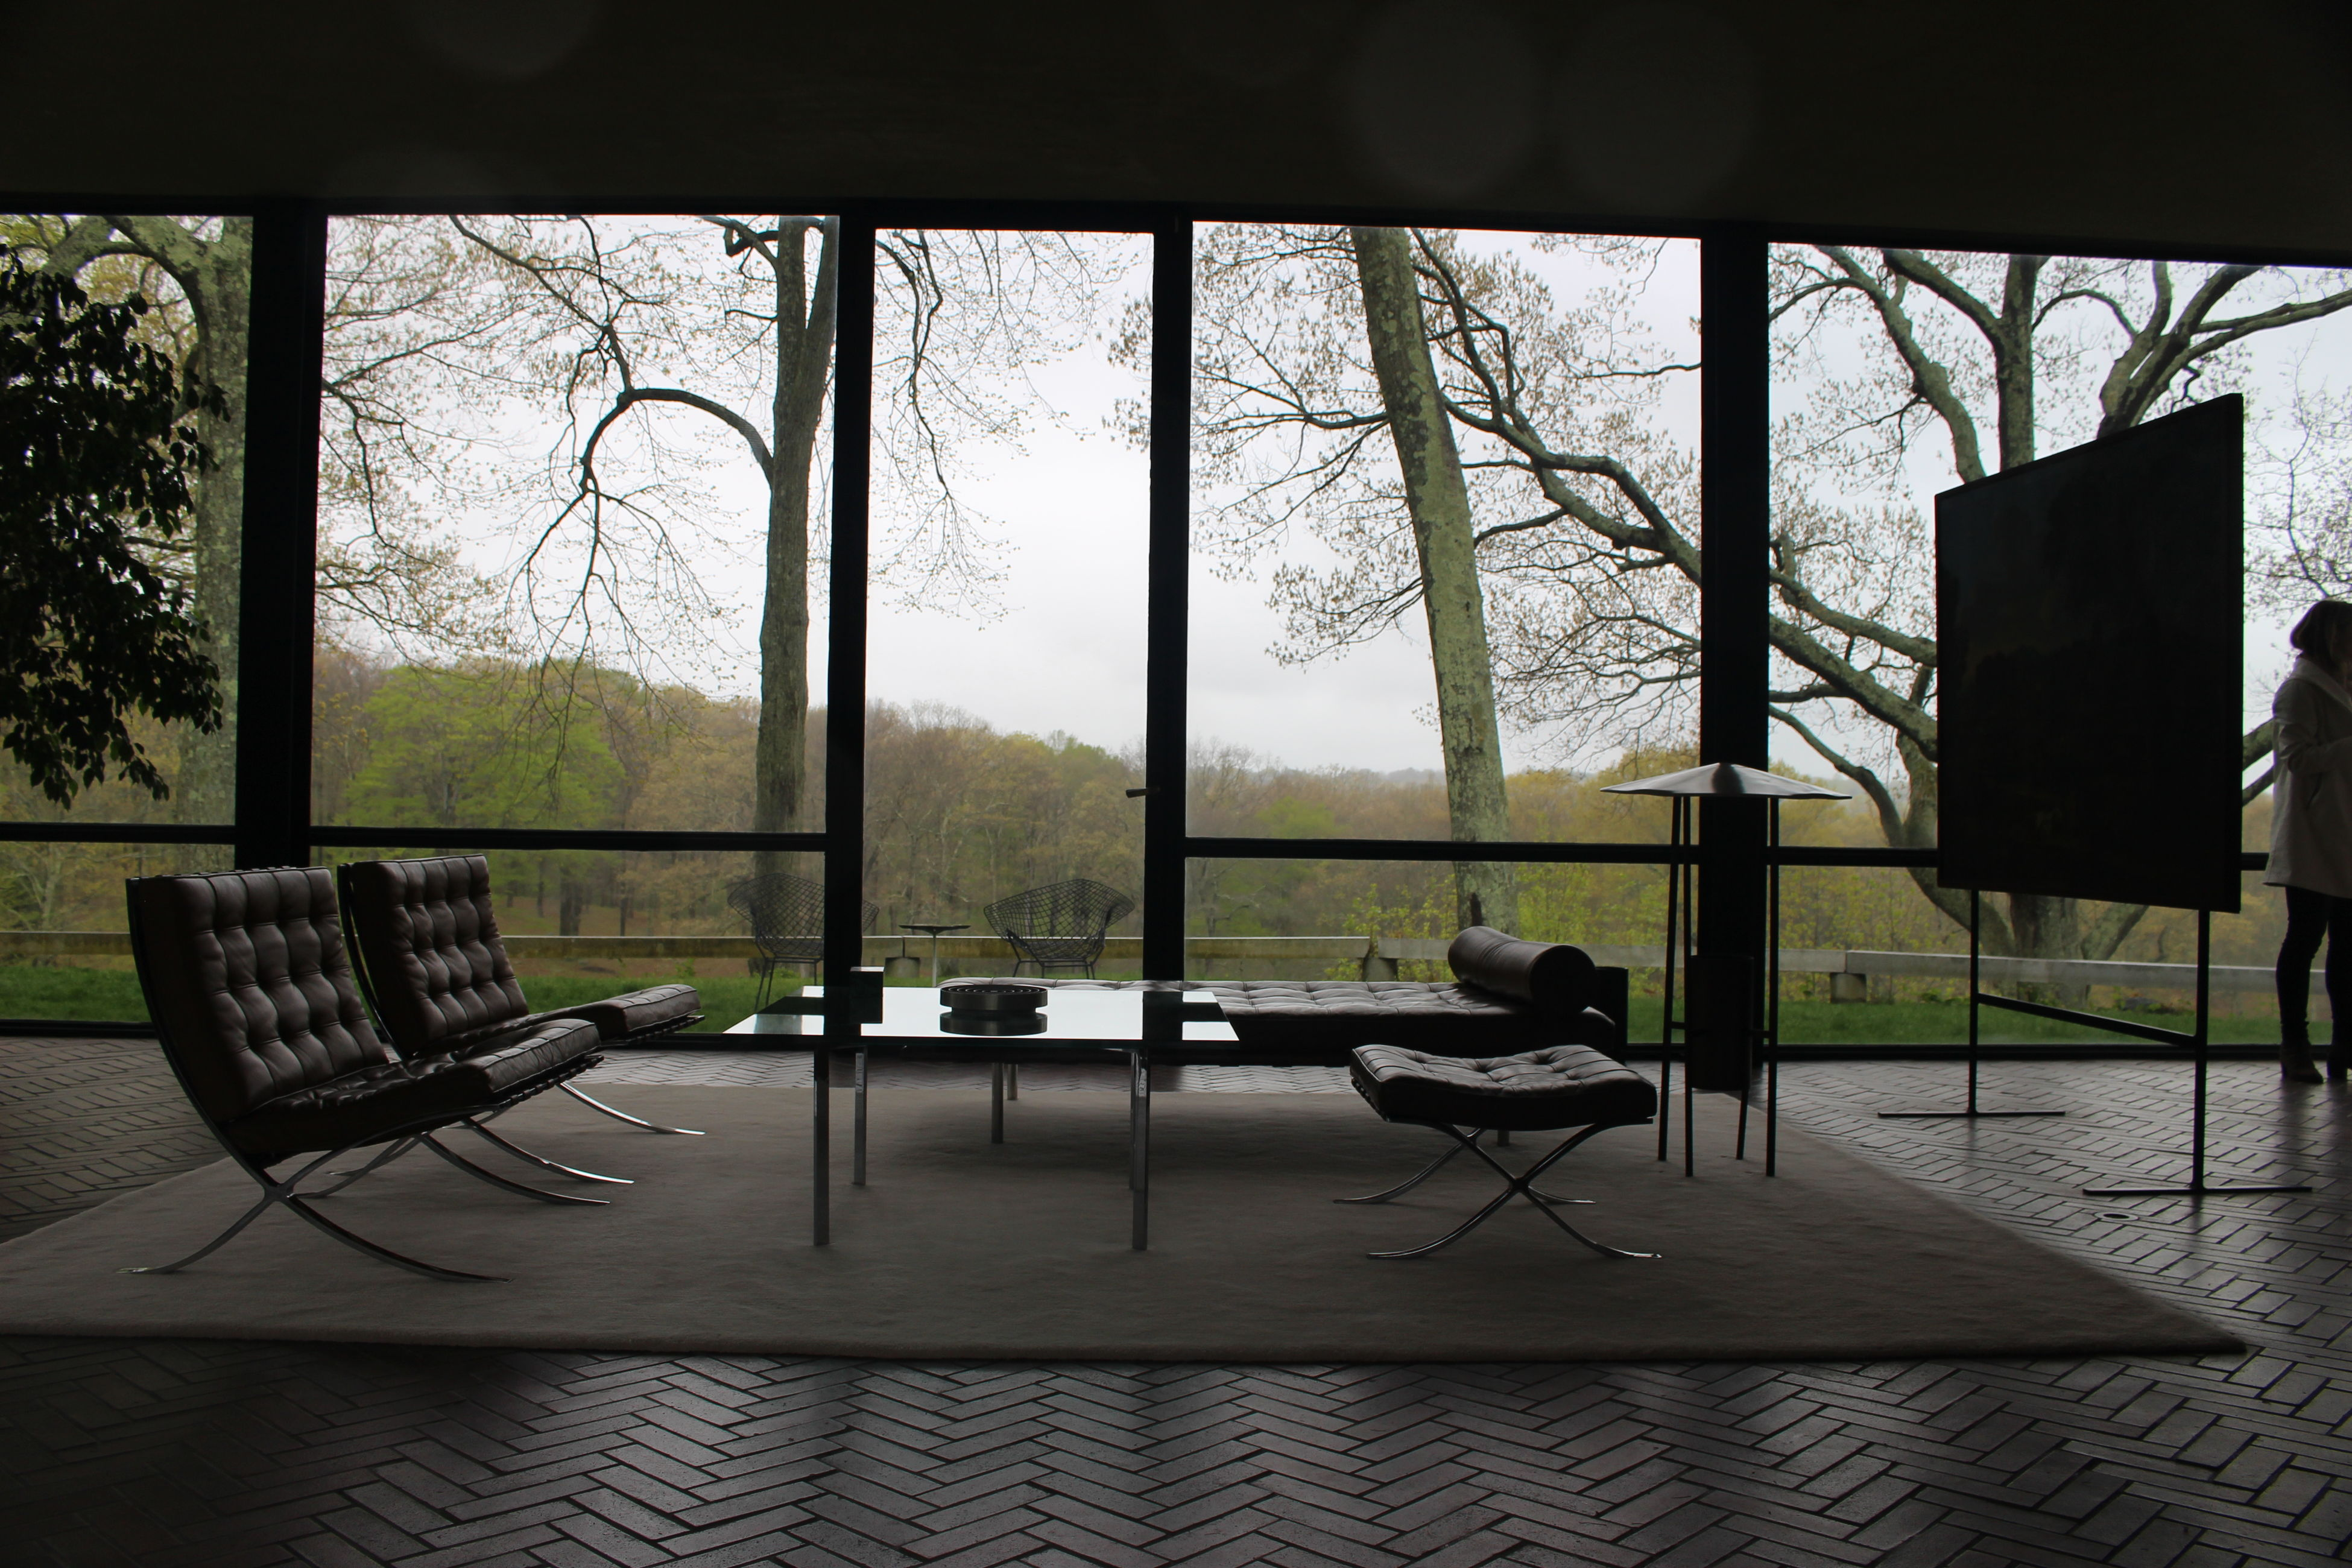 chair, home interior, tree, no people, indoors, day, nature, architecture, sky